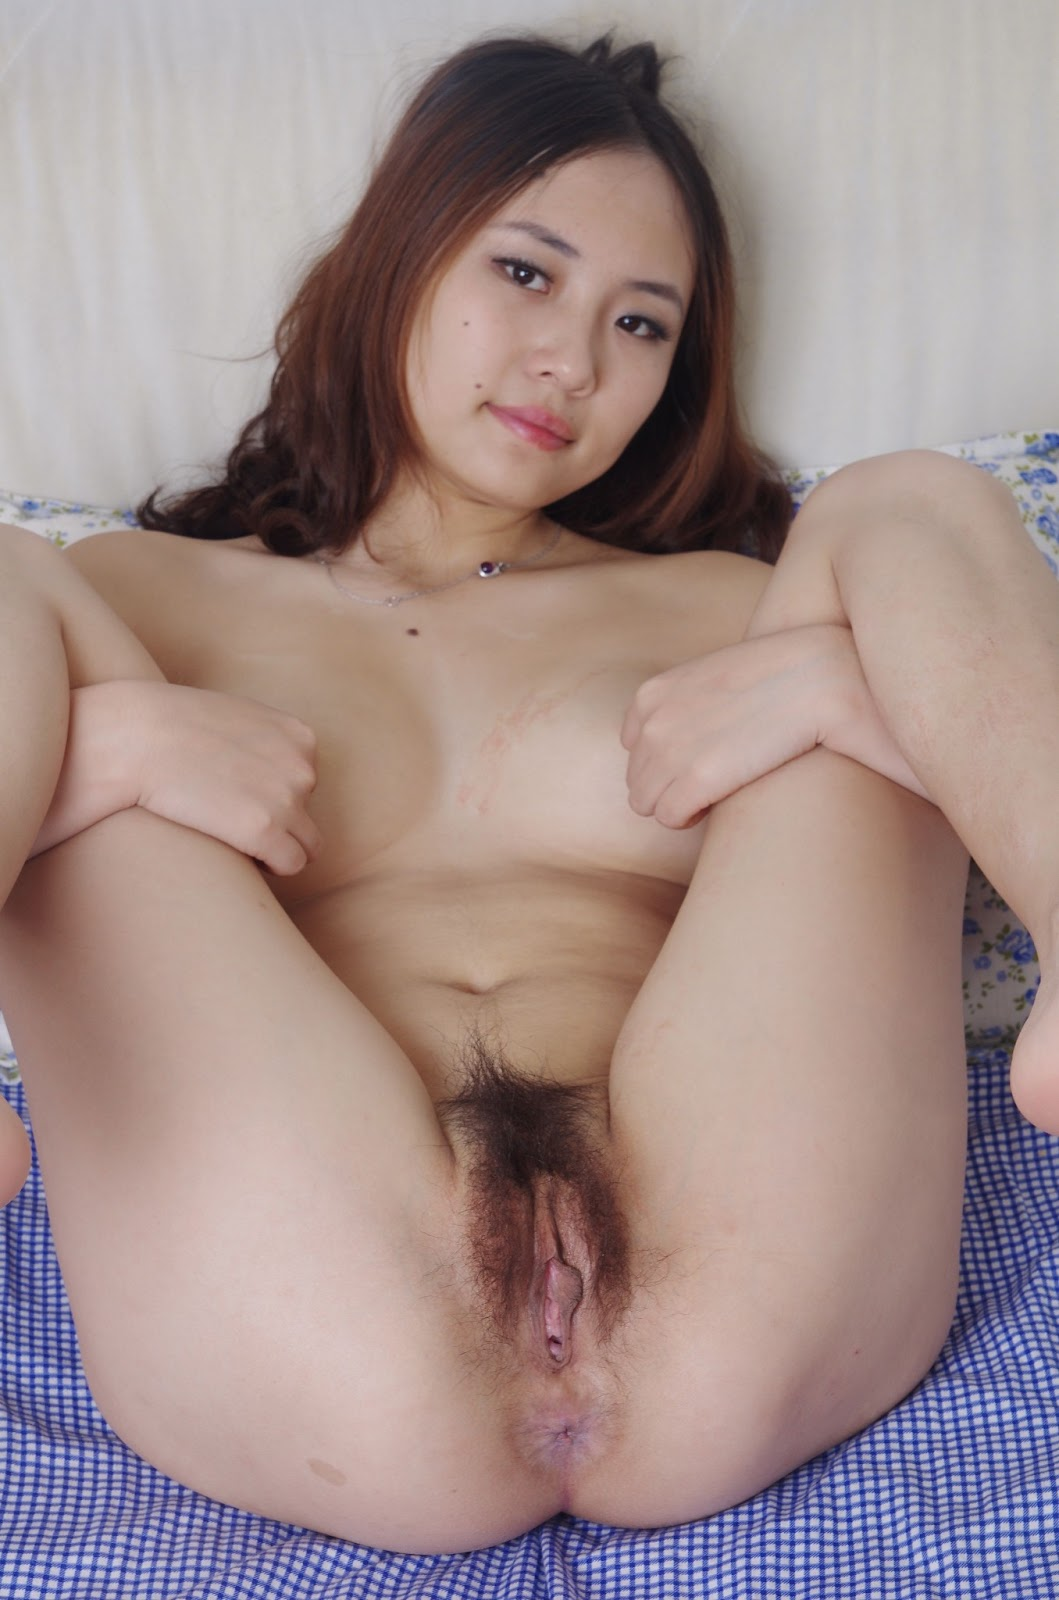 asia free hot adult movies